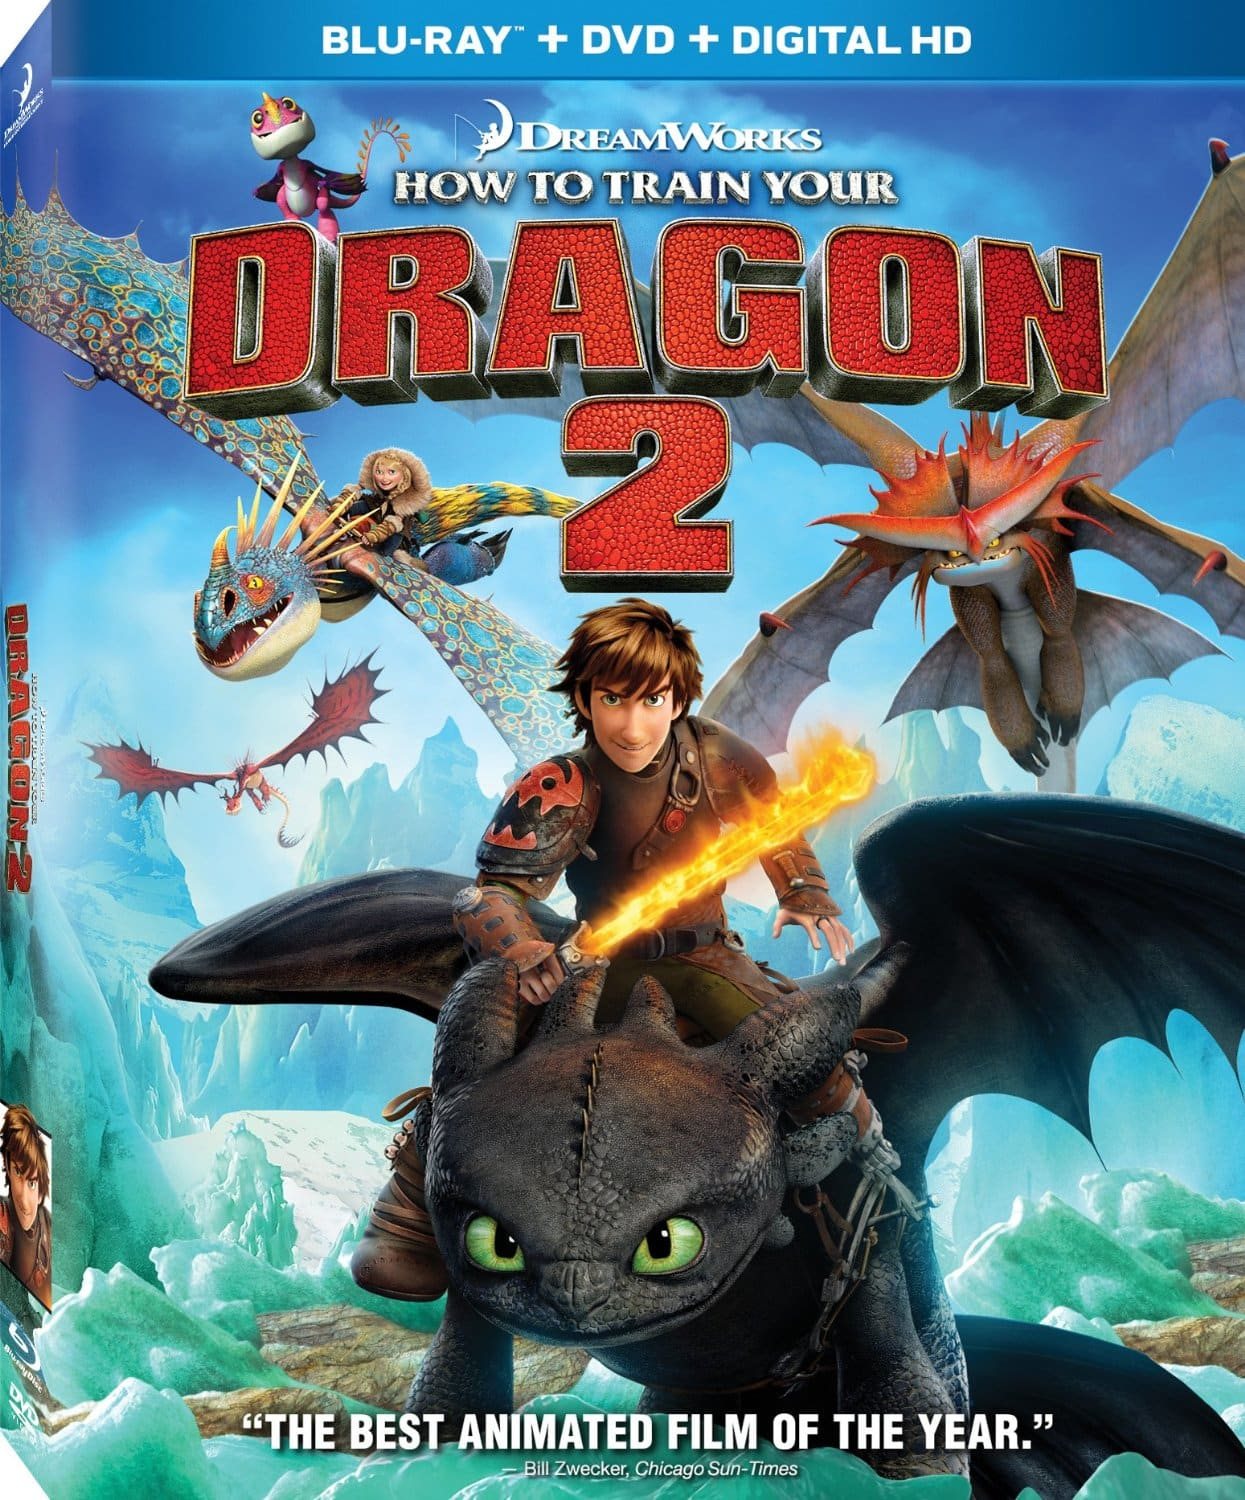 How To Train Your Dragon 2 (Blu-Ray Combo)  $10 + Free In-Store Pickup